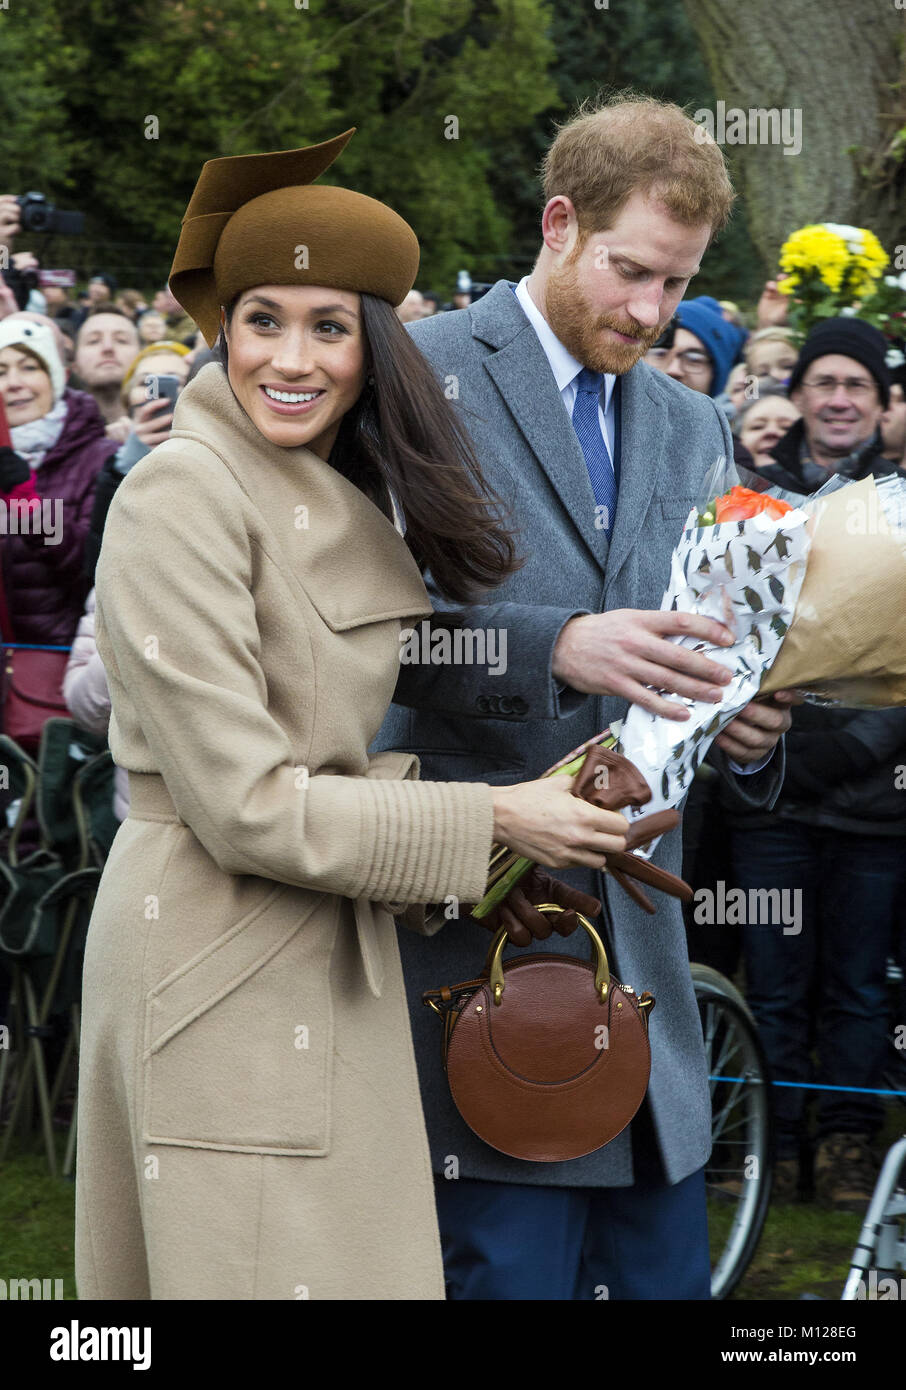 The British Royal family arrive at Sandringham to celebrate Christmas Day  Featuring: Prince Harry, Meghan Markle - Stock Image